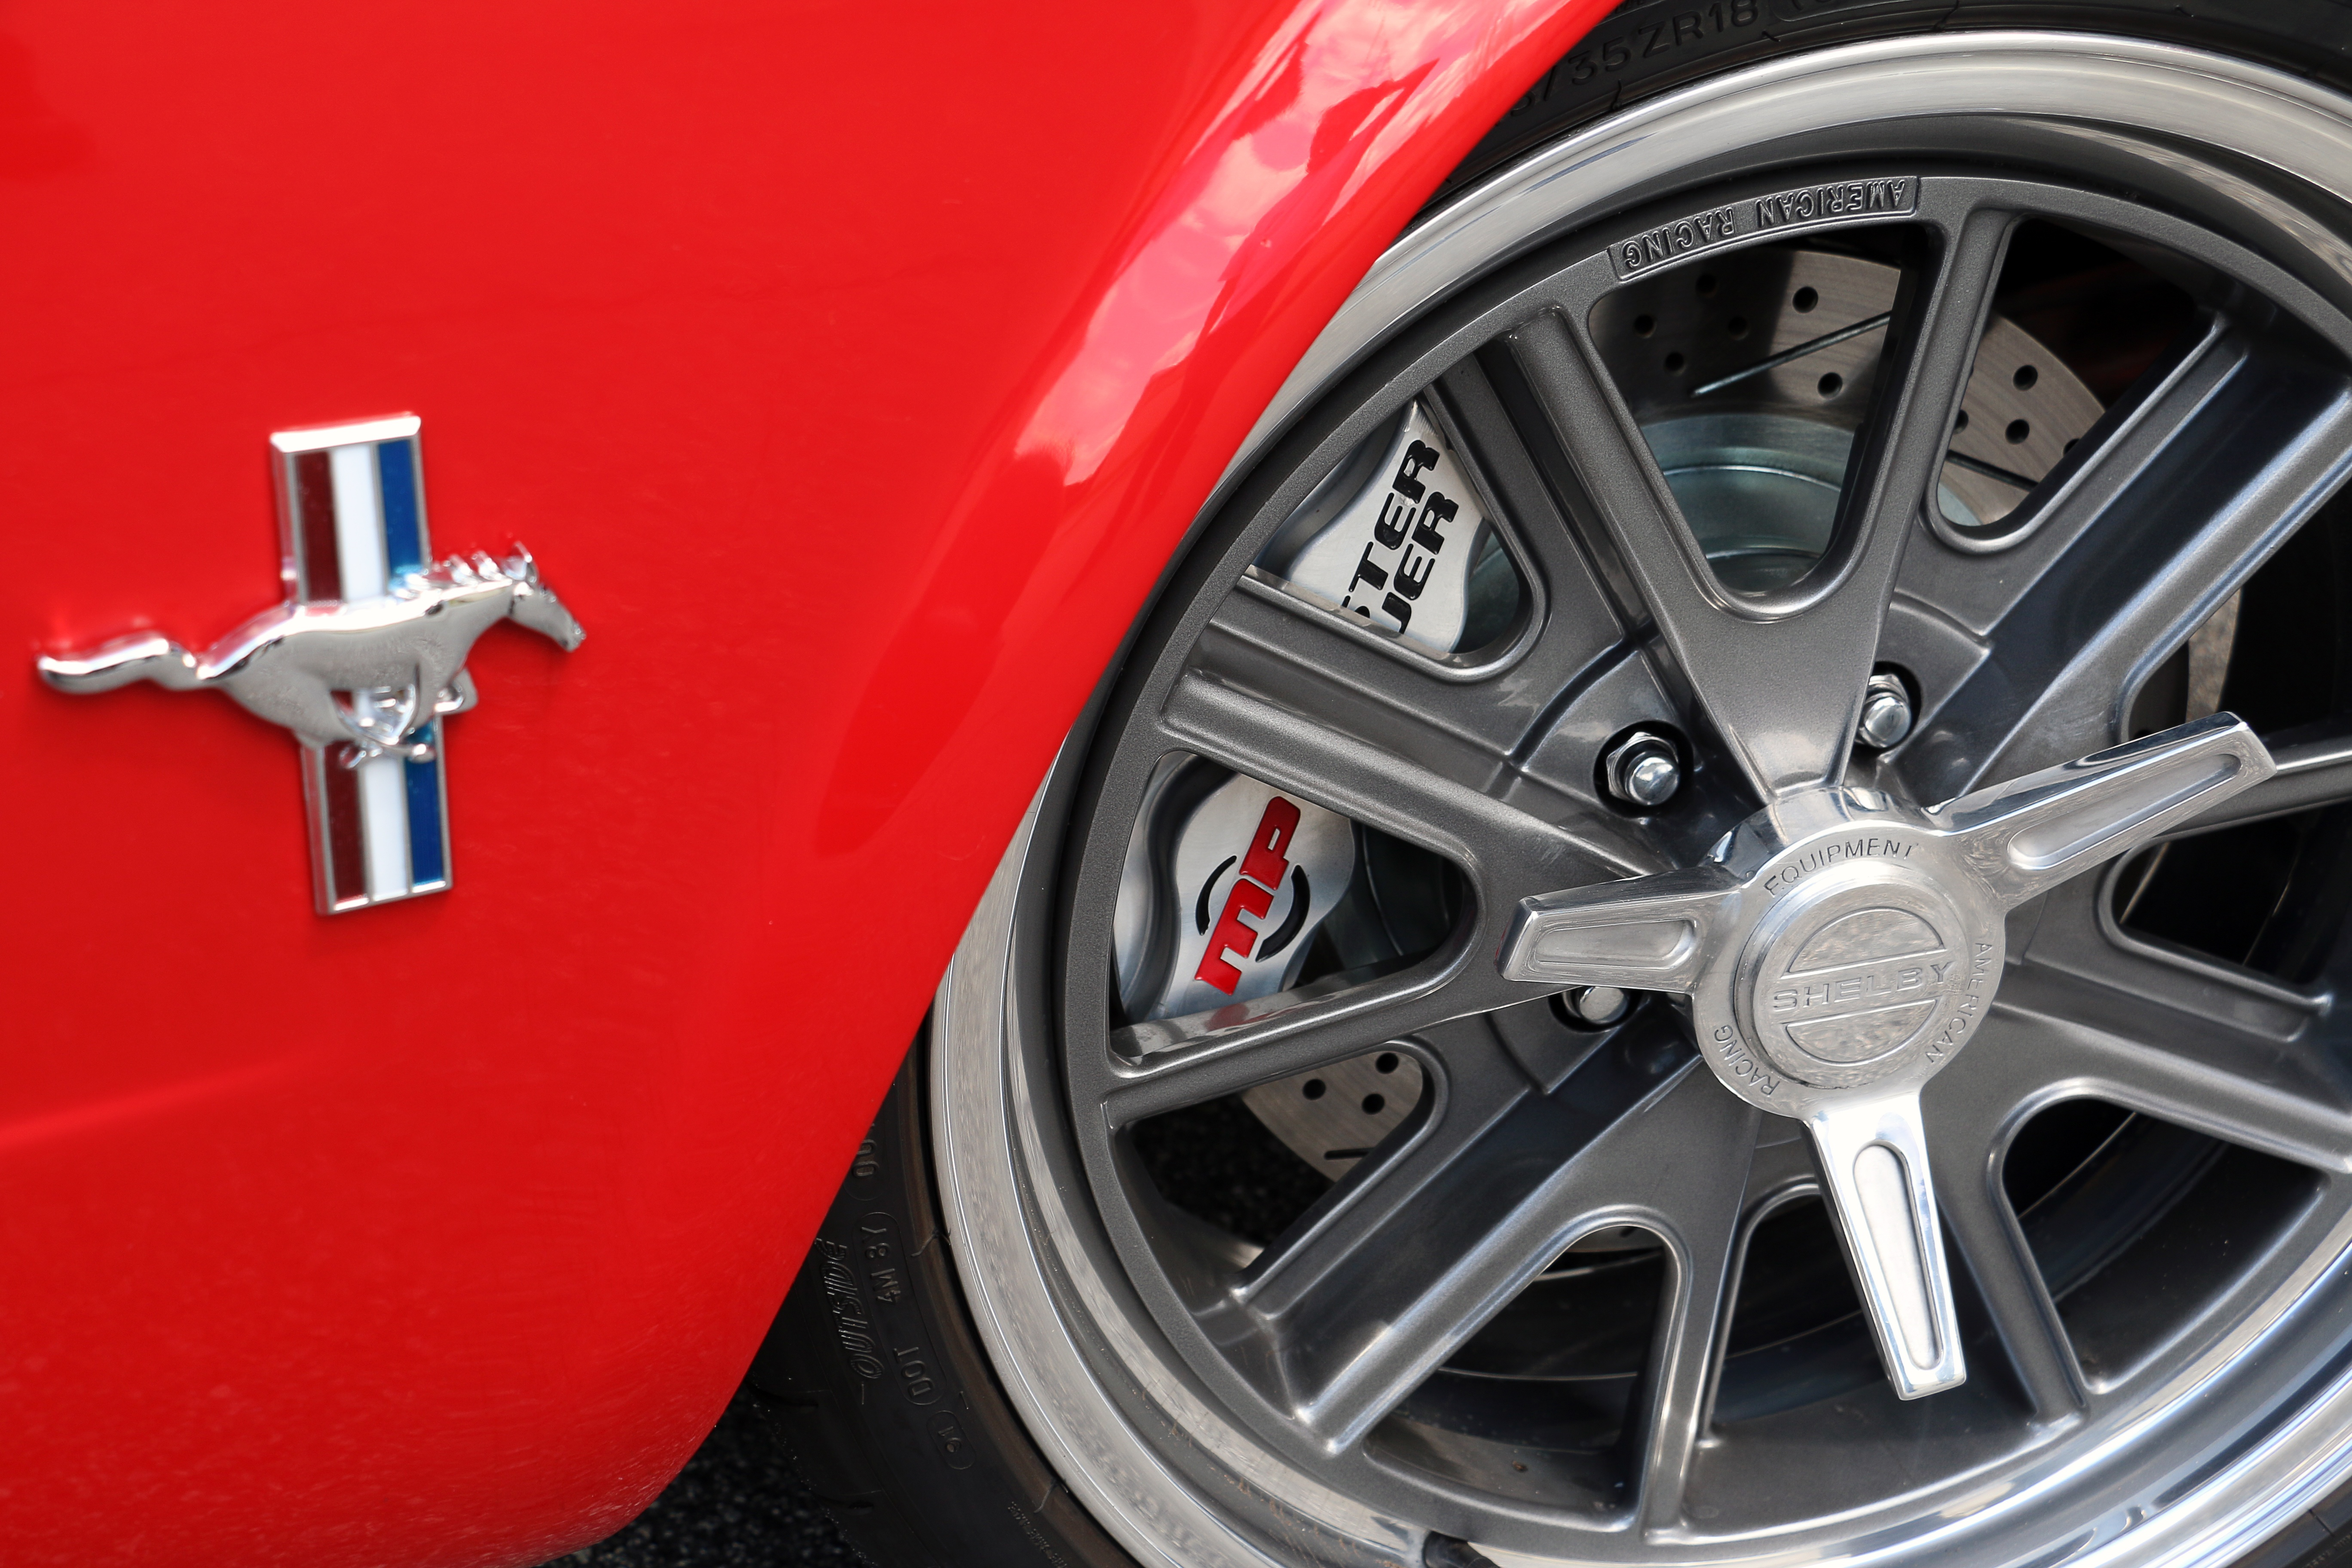 Ford Mustang Front Brakes